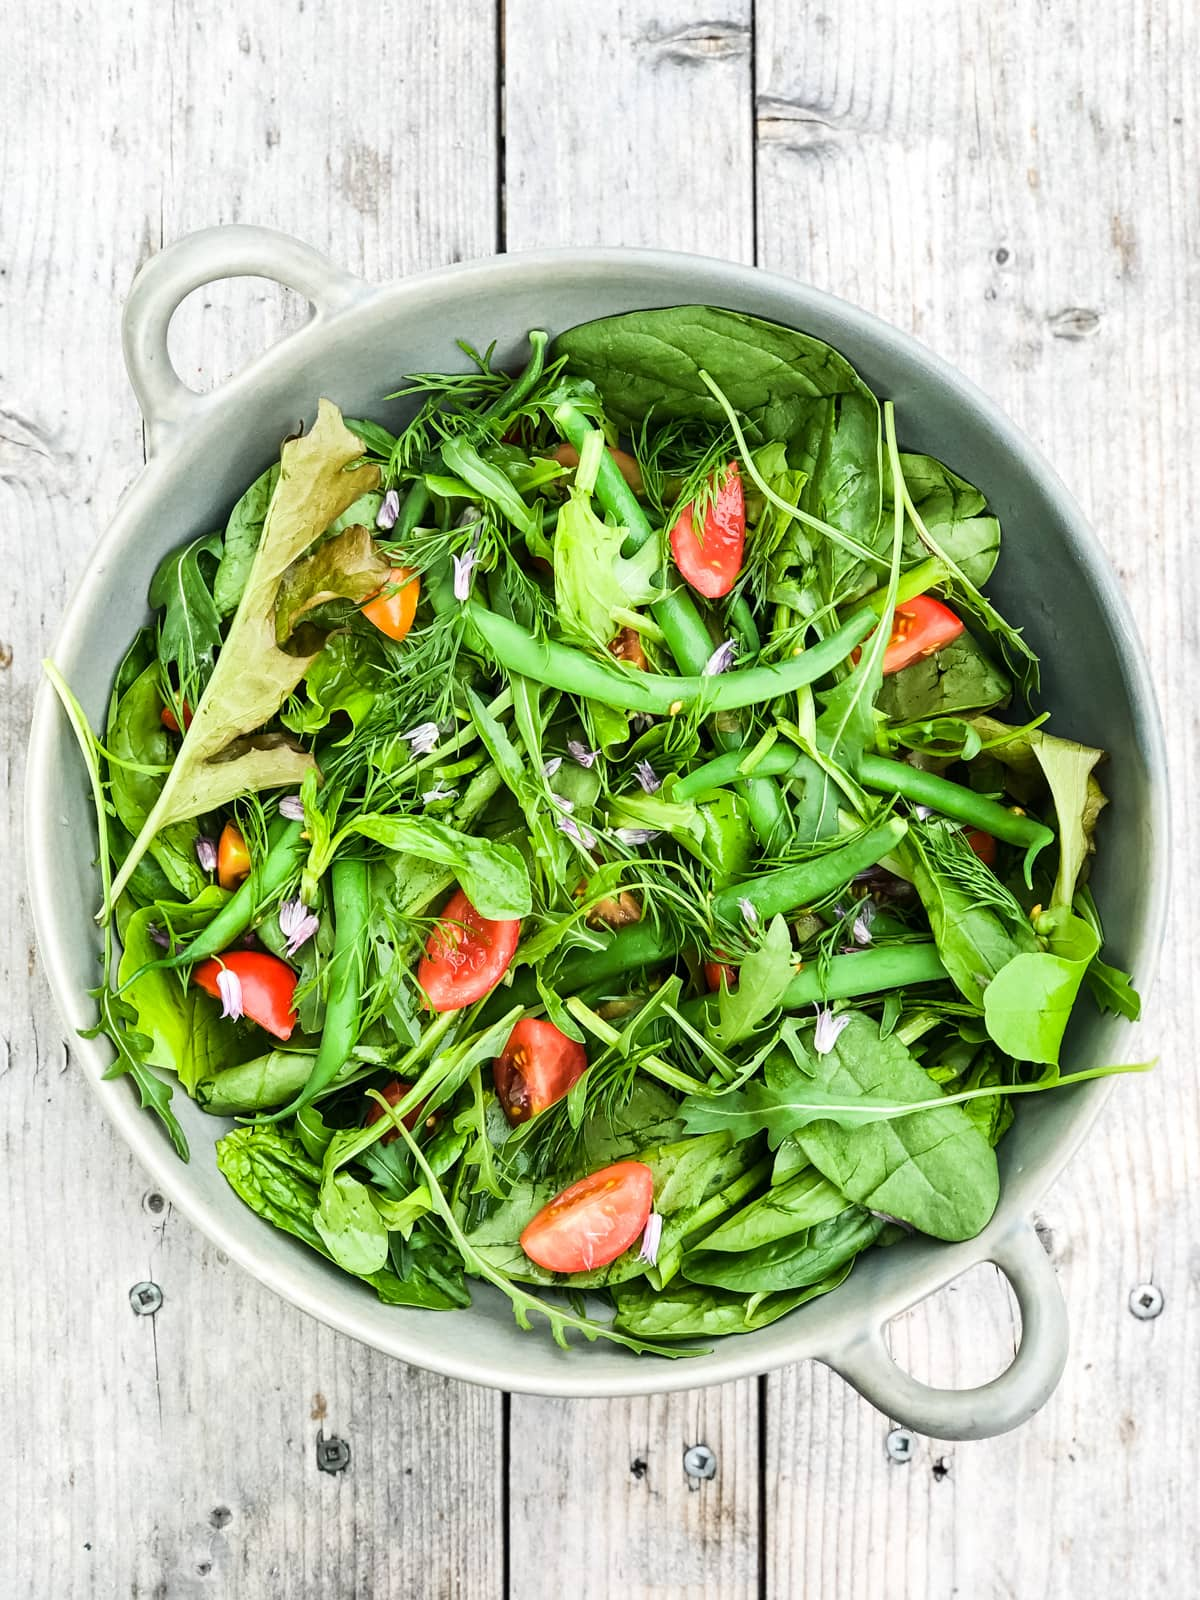 a top down view of a Simple Green Salad loaded with fresh greens, green beans, herbs and sliced tomatoes